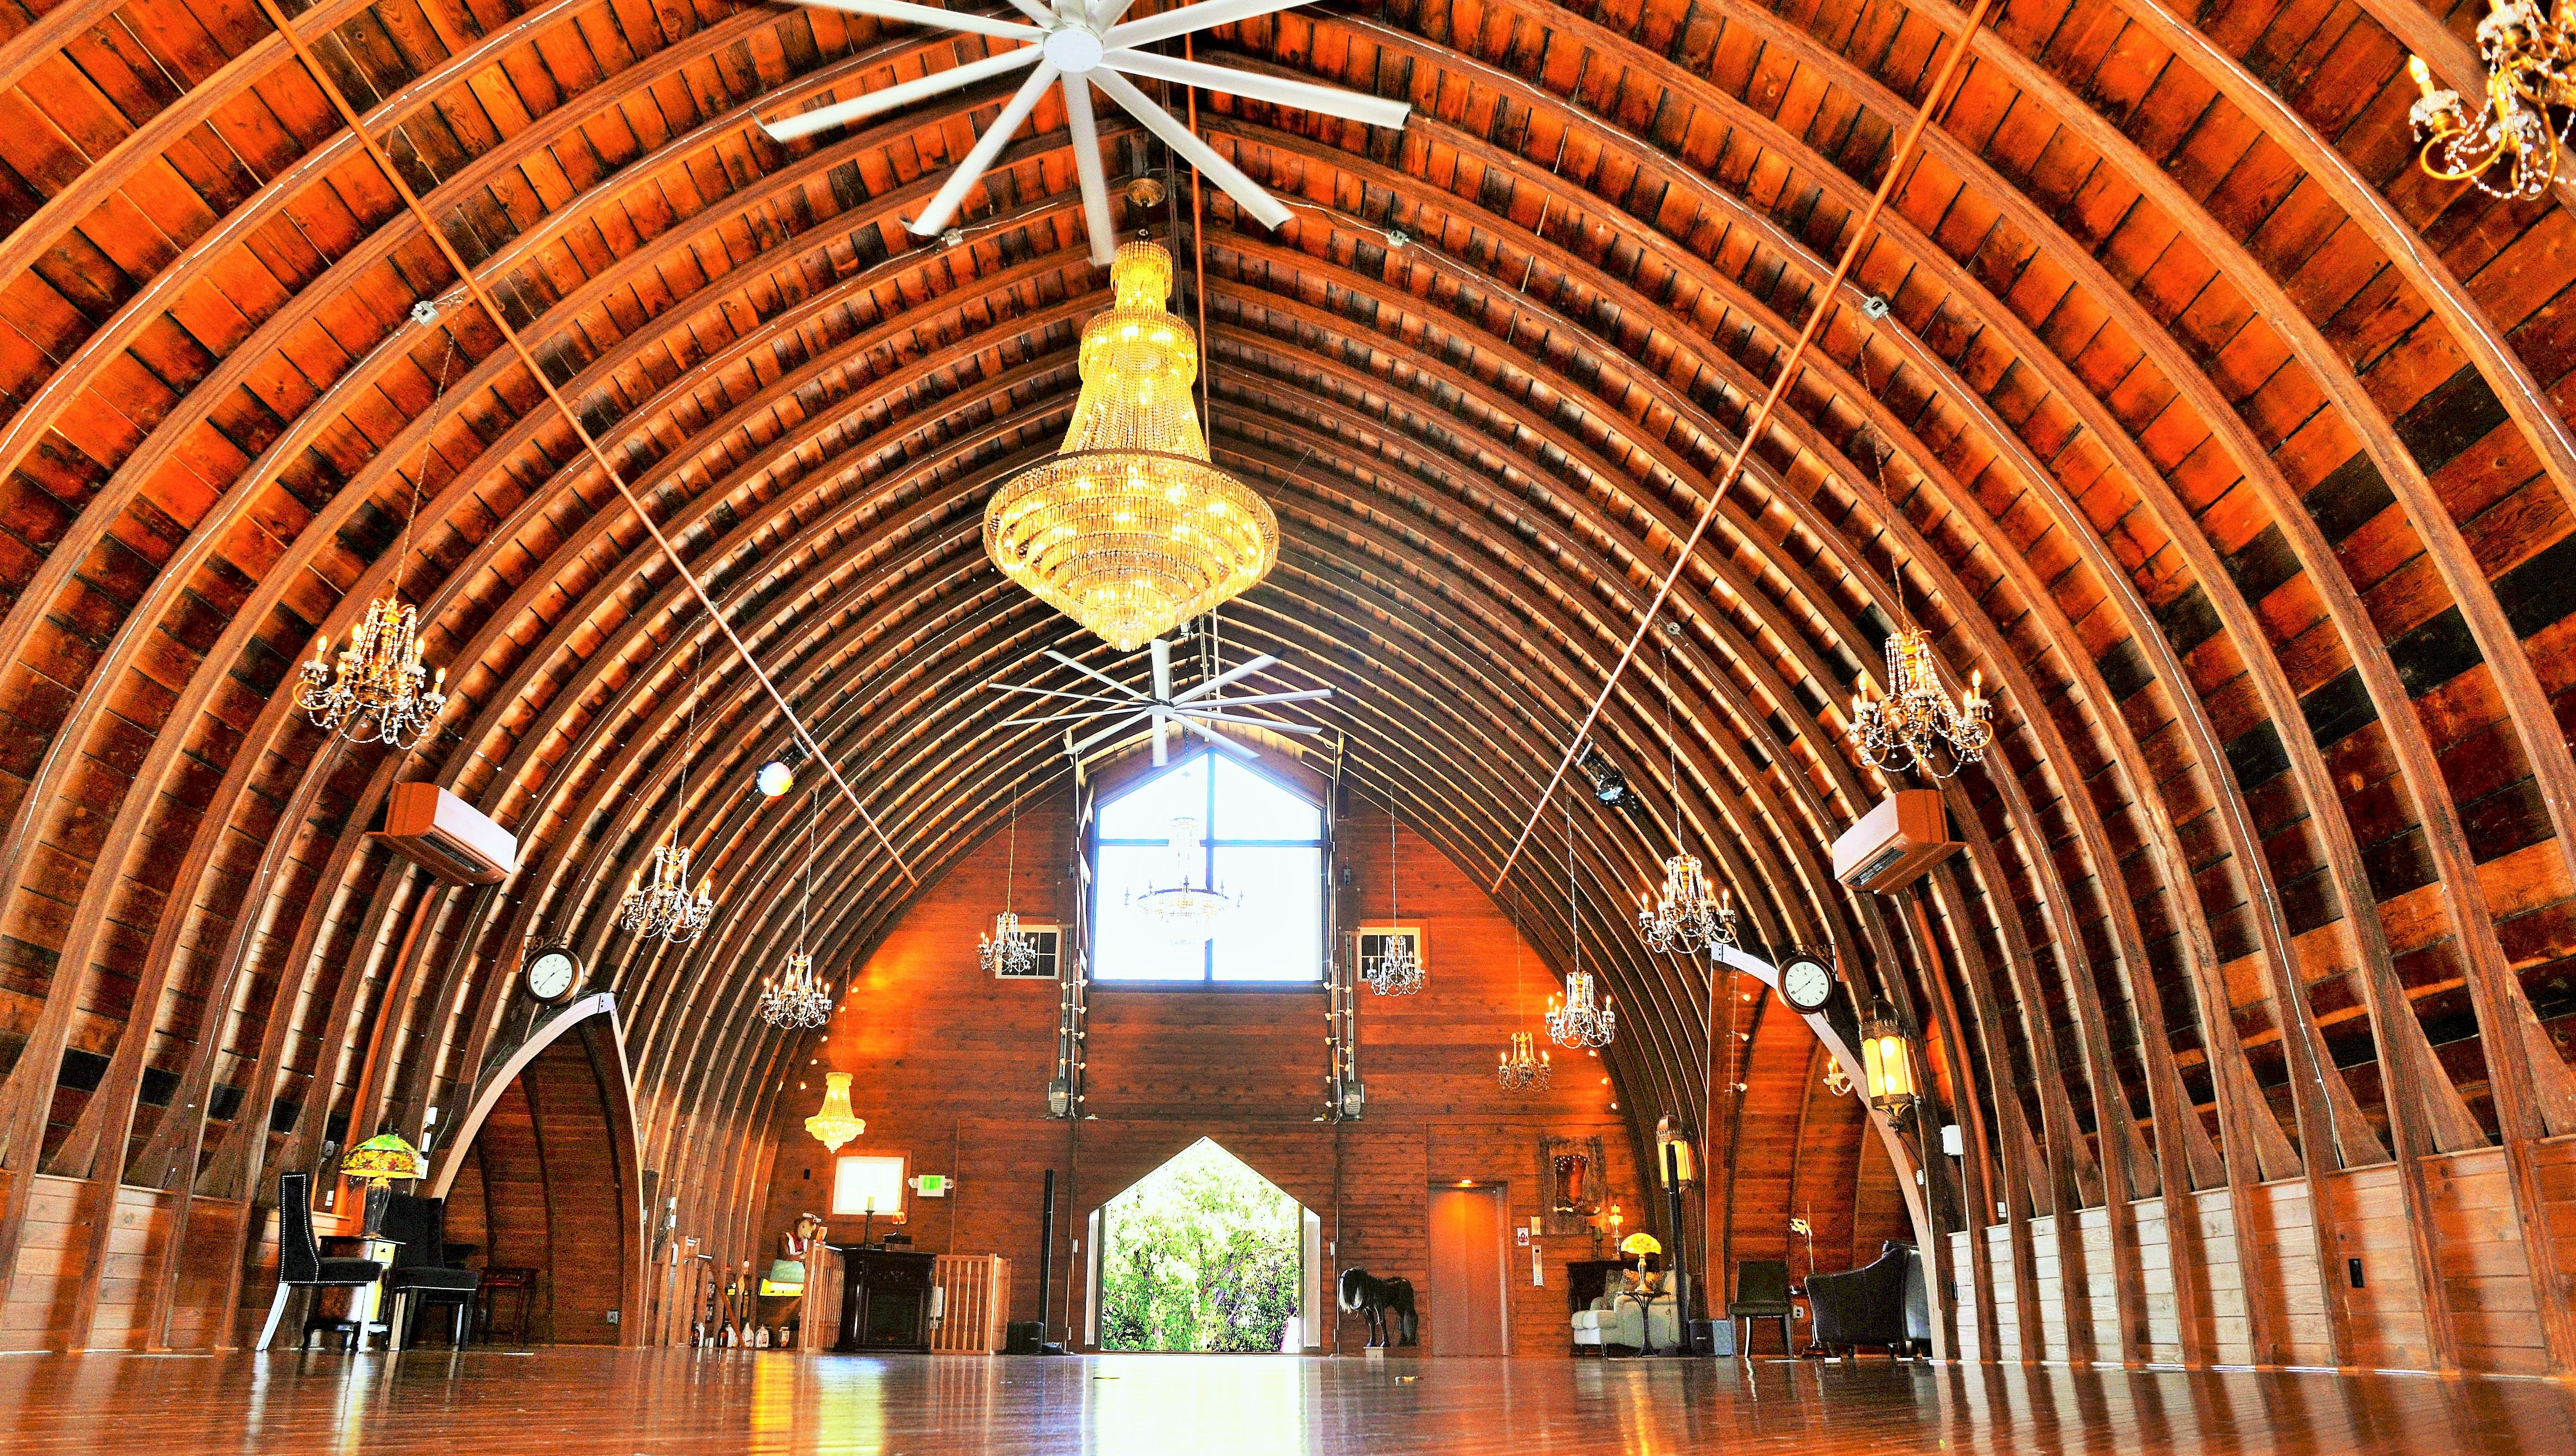 Upper Level Great Room Loft with Soaring Gothic Arch Roof